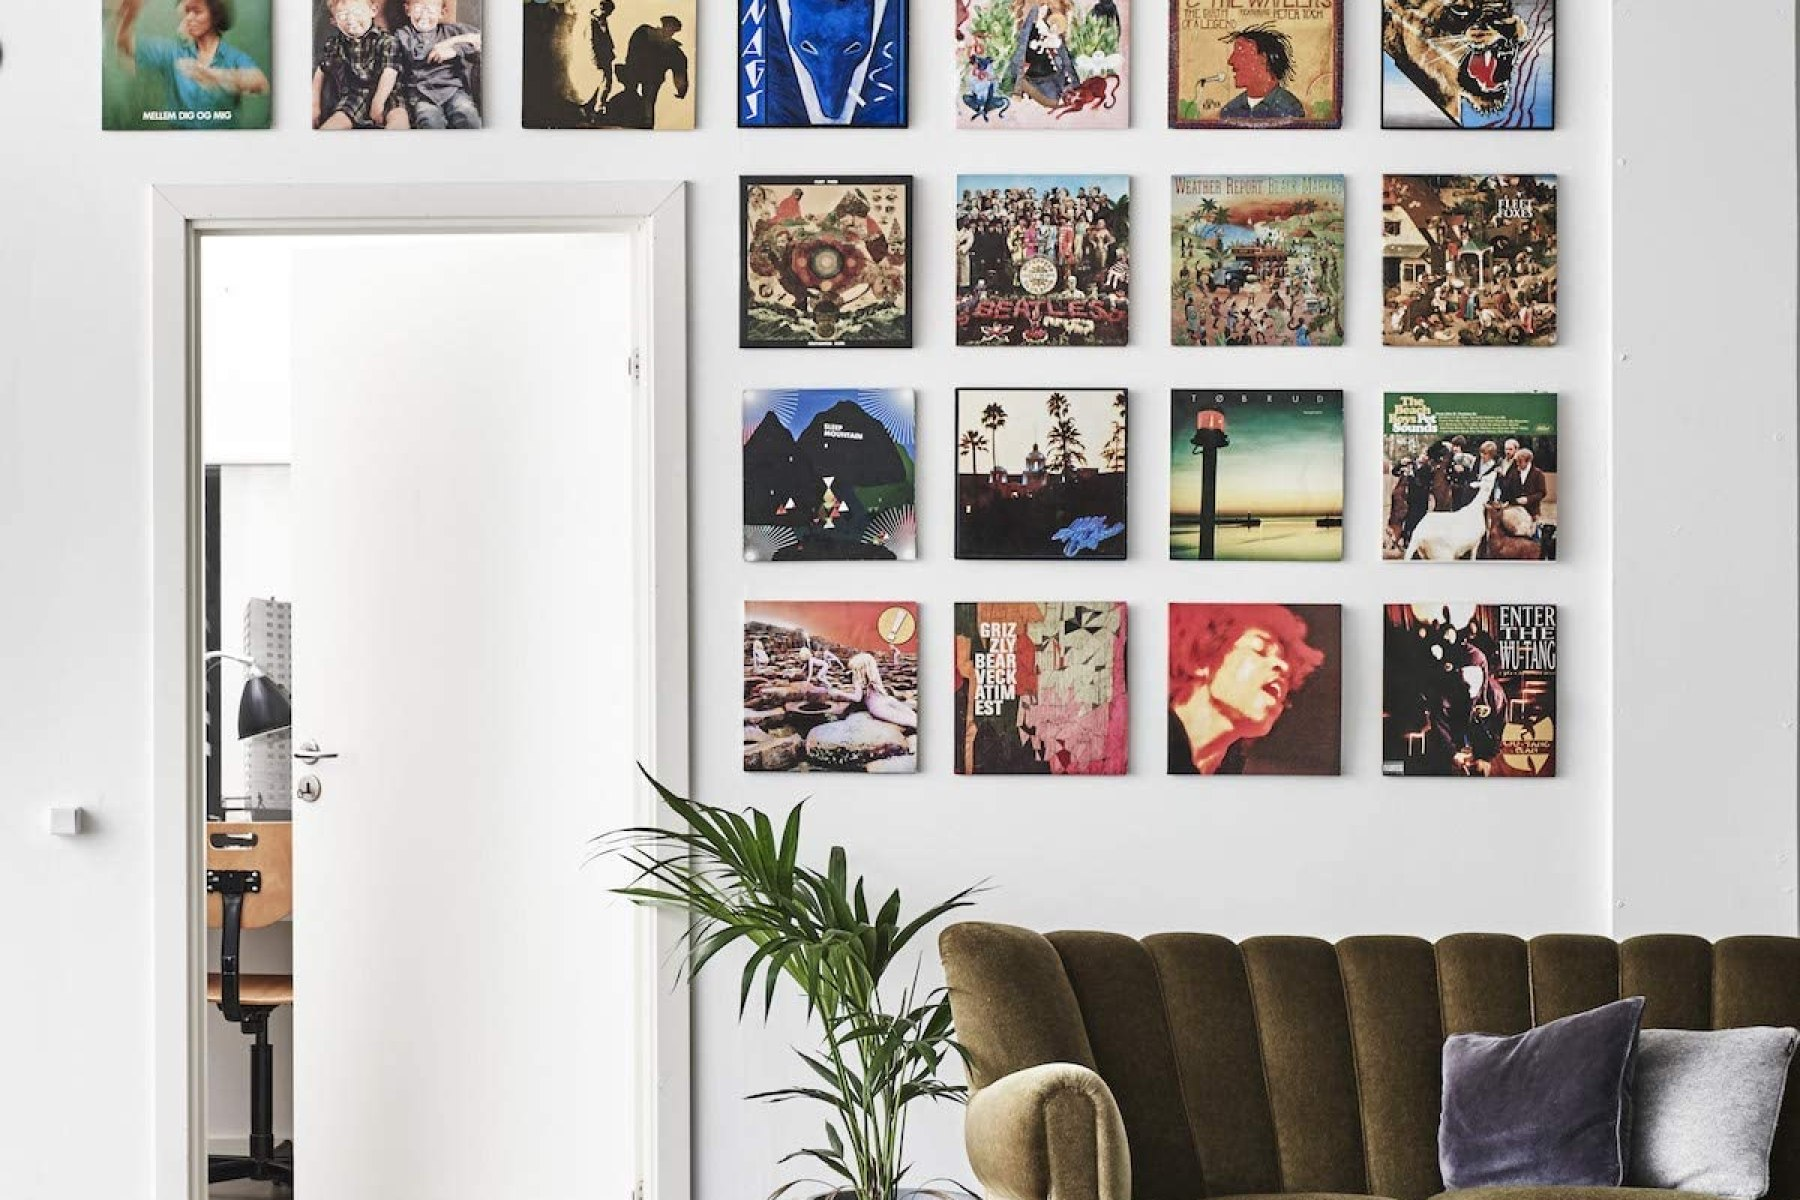 How To Frame And Display Your Vinyl Records - Rolling Stone